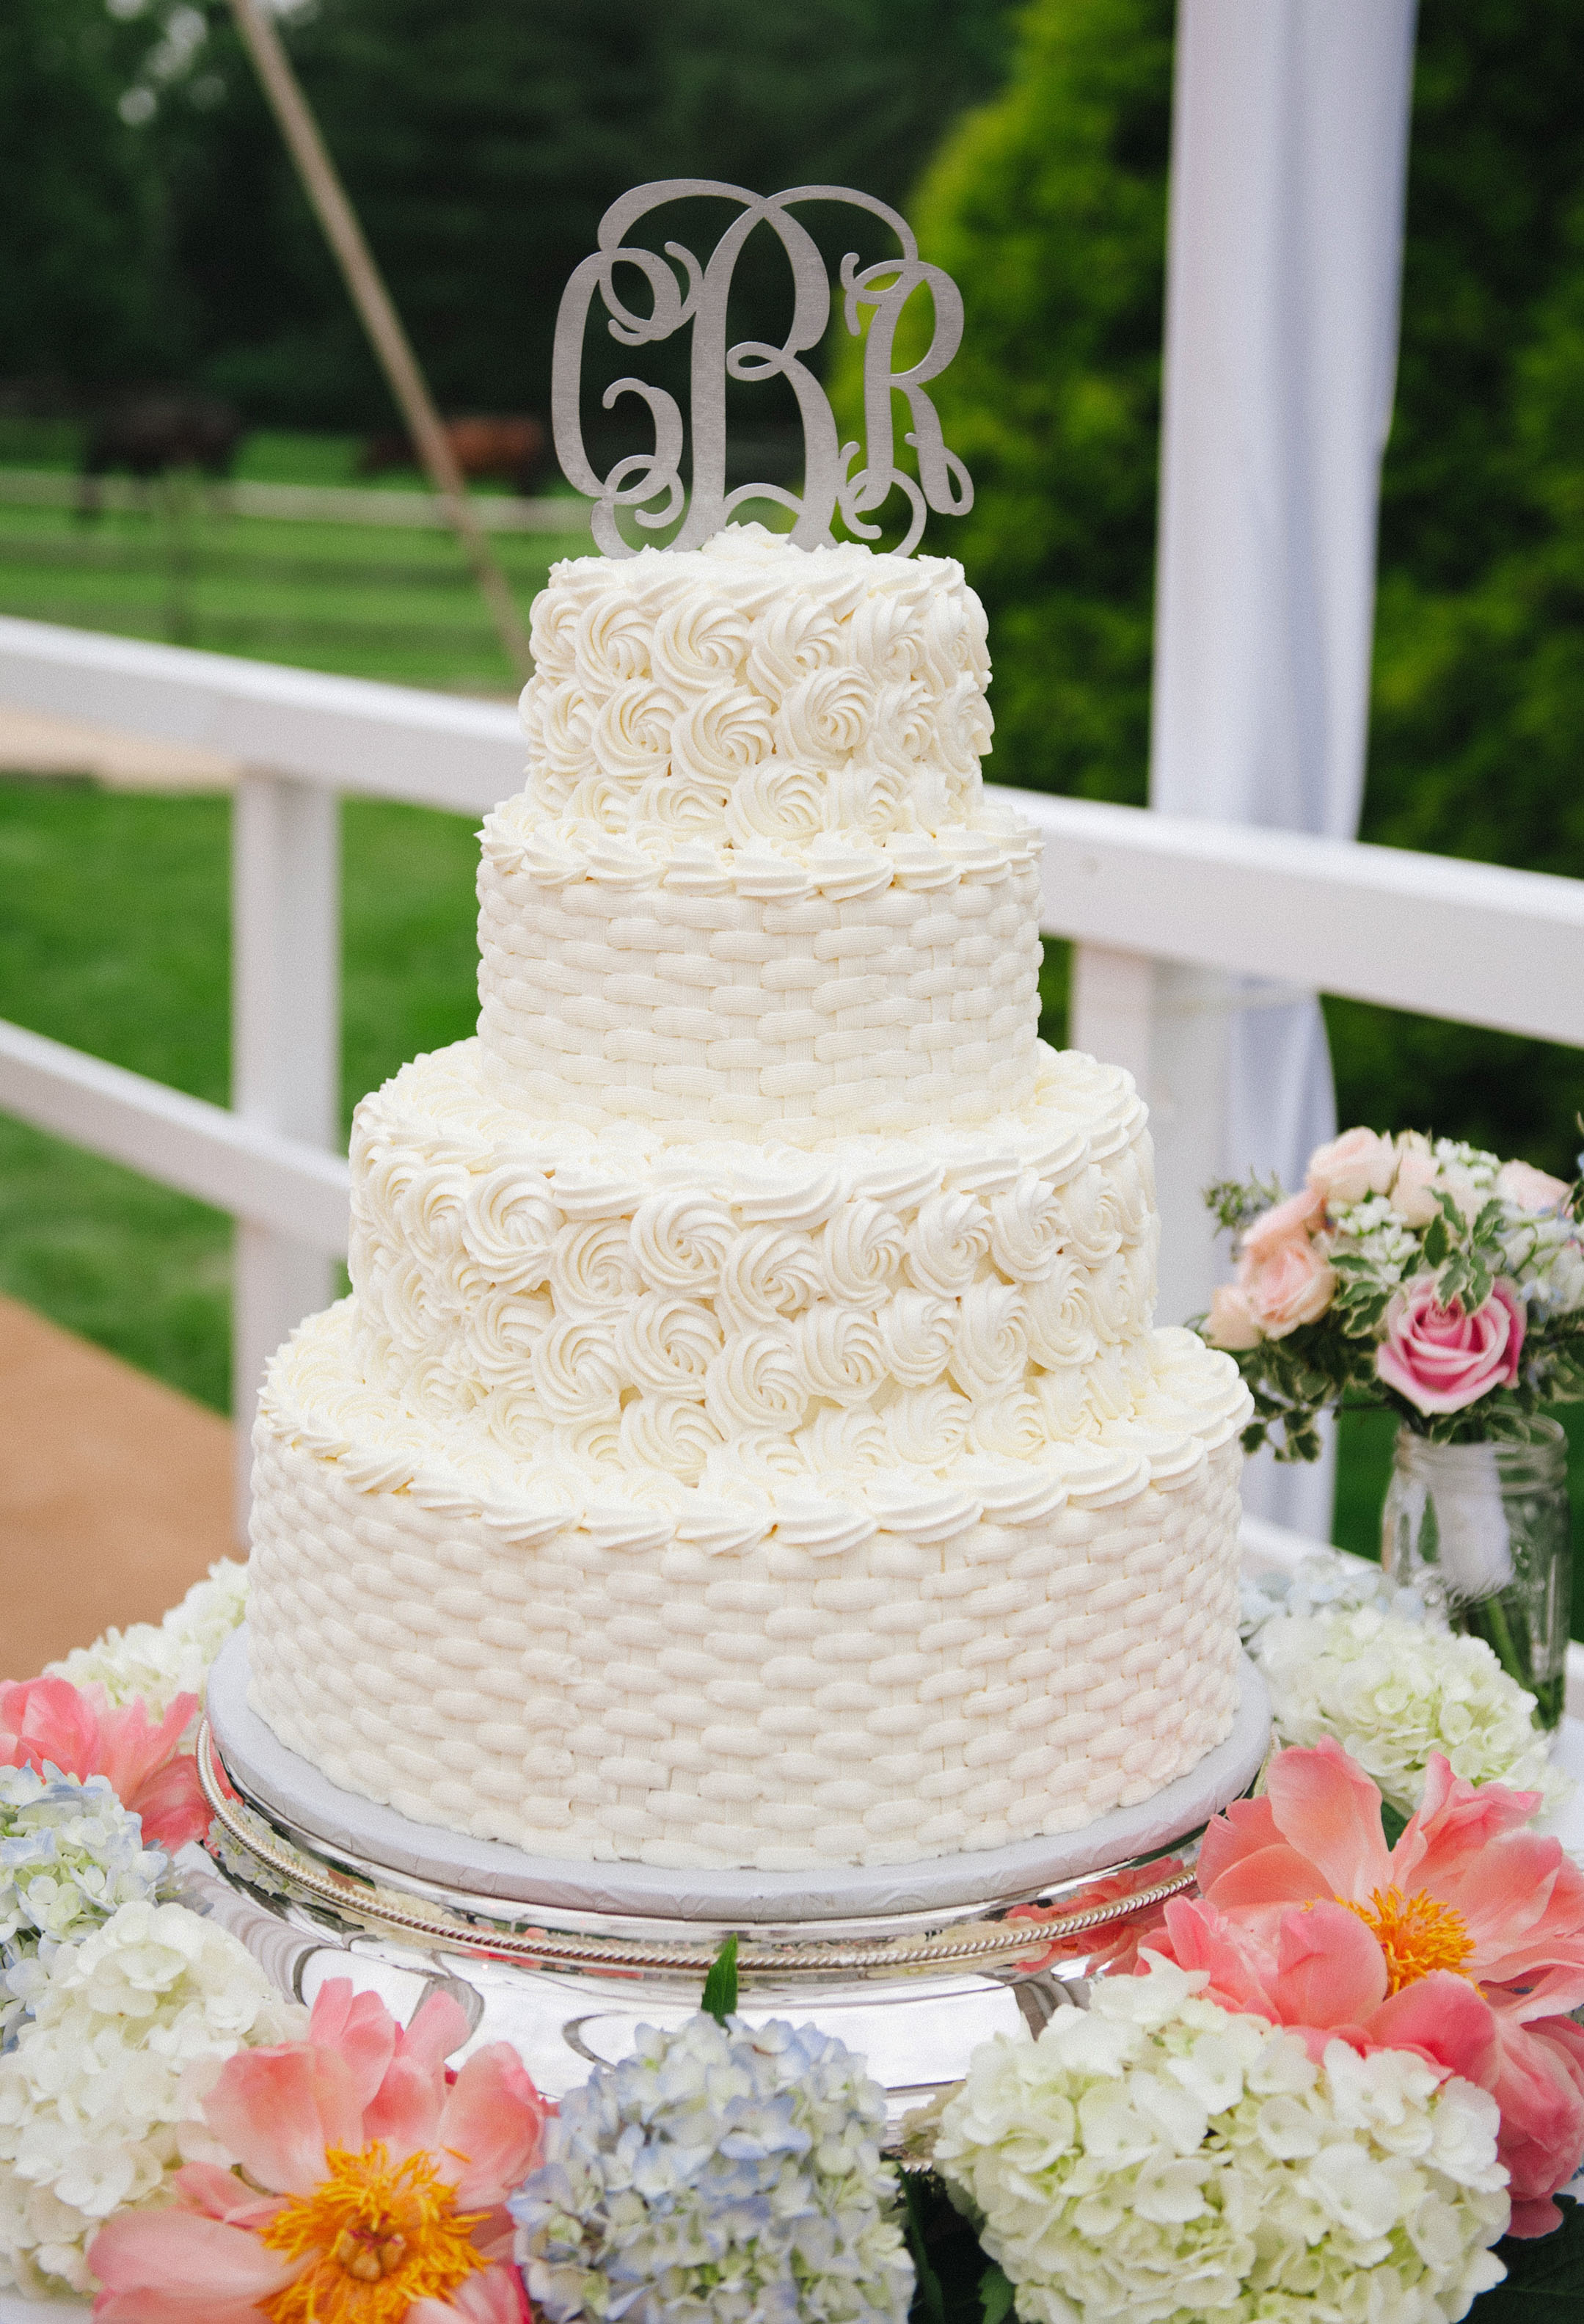 Palmers Bakery Custom Wedding Cakes And Desserts